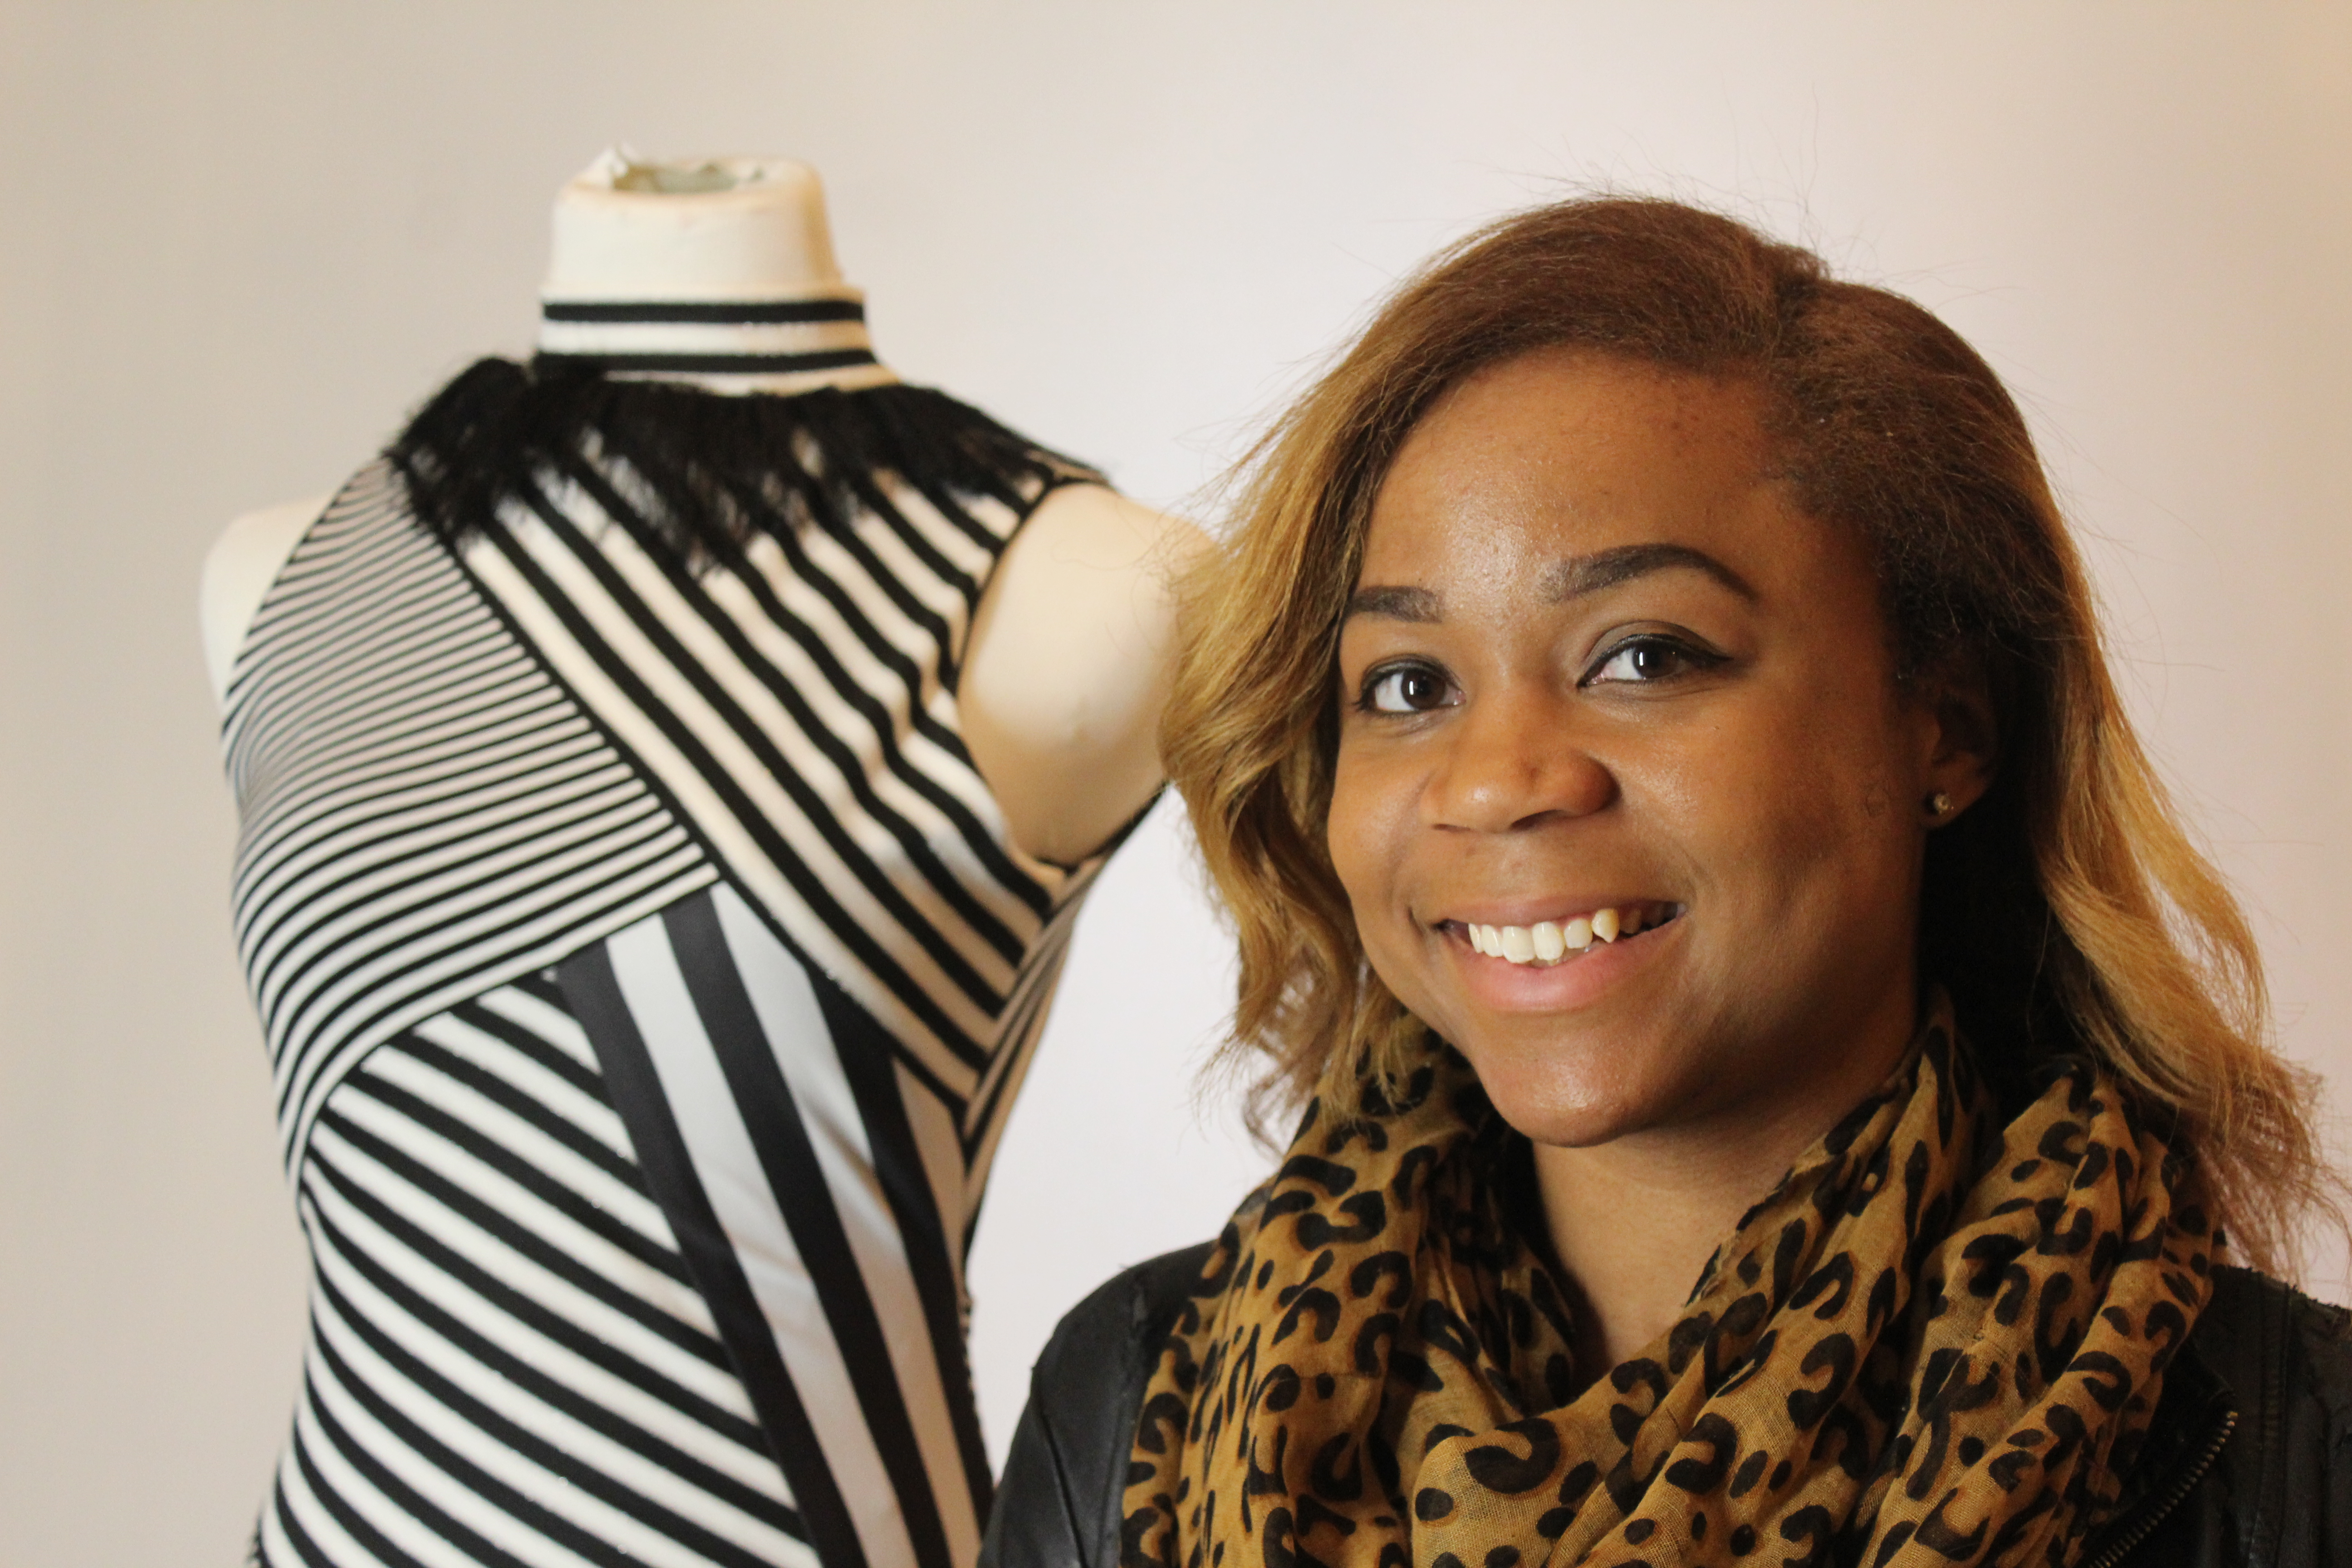 Former Area Math Teacher Has Own Clothing Line Will Be Modeled In New York Fashion Week The Birmingham Times